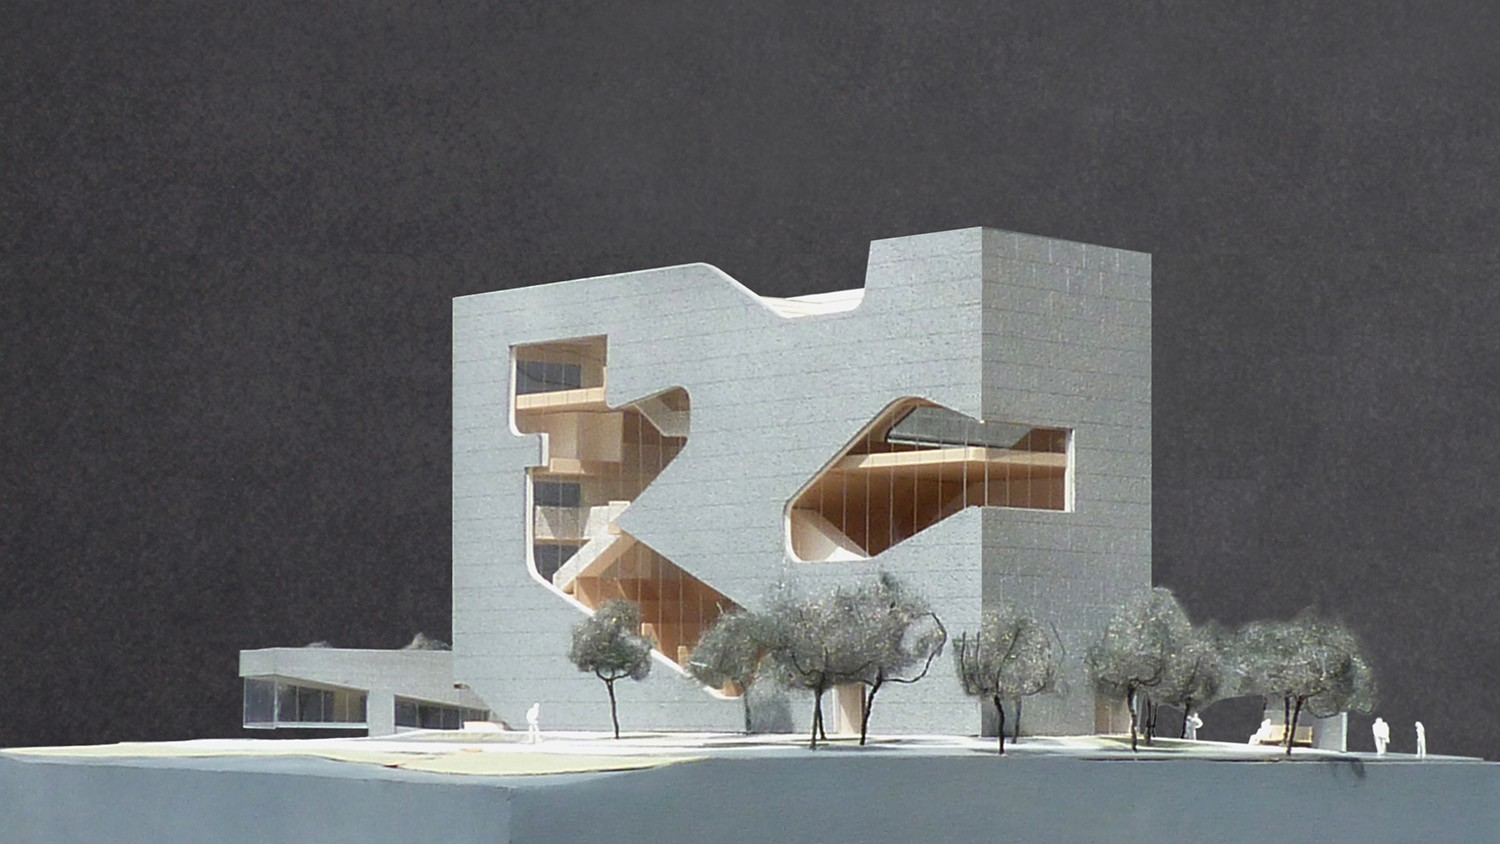 https://s3.us-east-2.amazonaws.com/steven-holl/uploads/projects/project-images/StevenHollArchitects_HPL_Southwest Elevation v2edit_1_WH.jpg